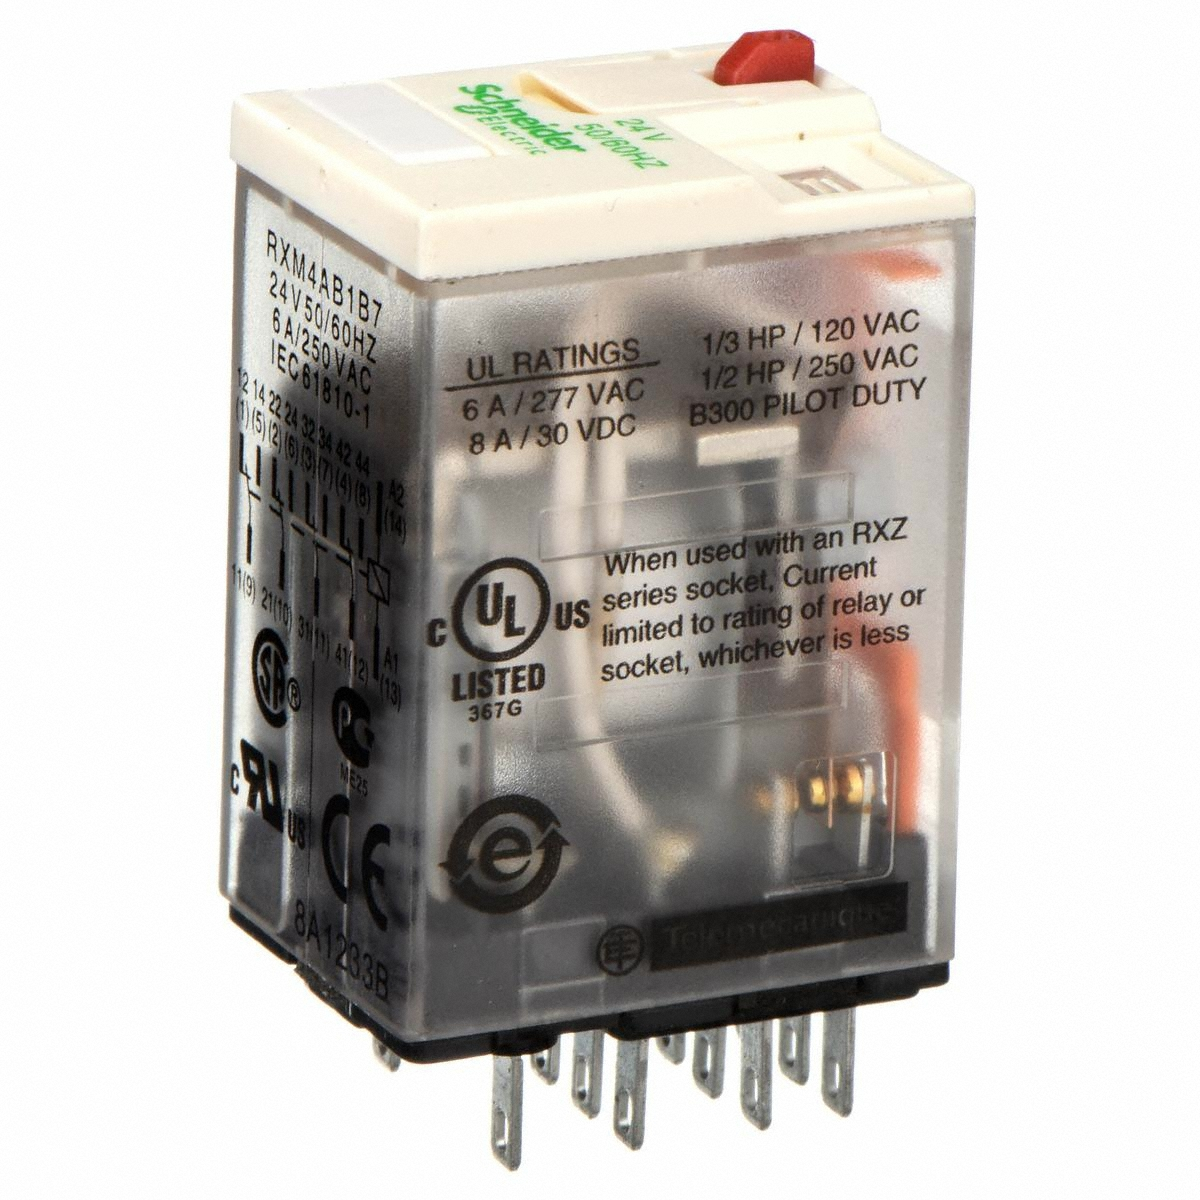 Schneider Electric Socket Mount Relay 4pdt Pole Throw Configuration Current Rating 14 Terminals Terminal 24v Ac Control Volt Gamut